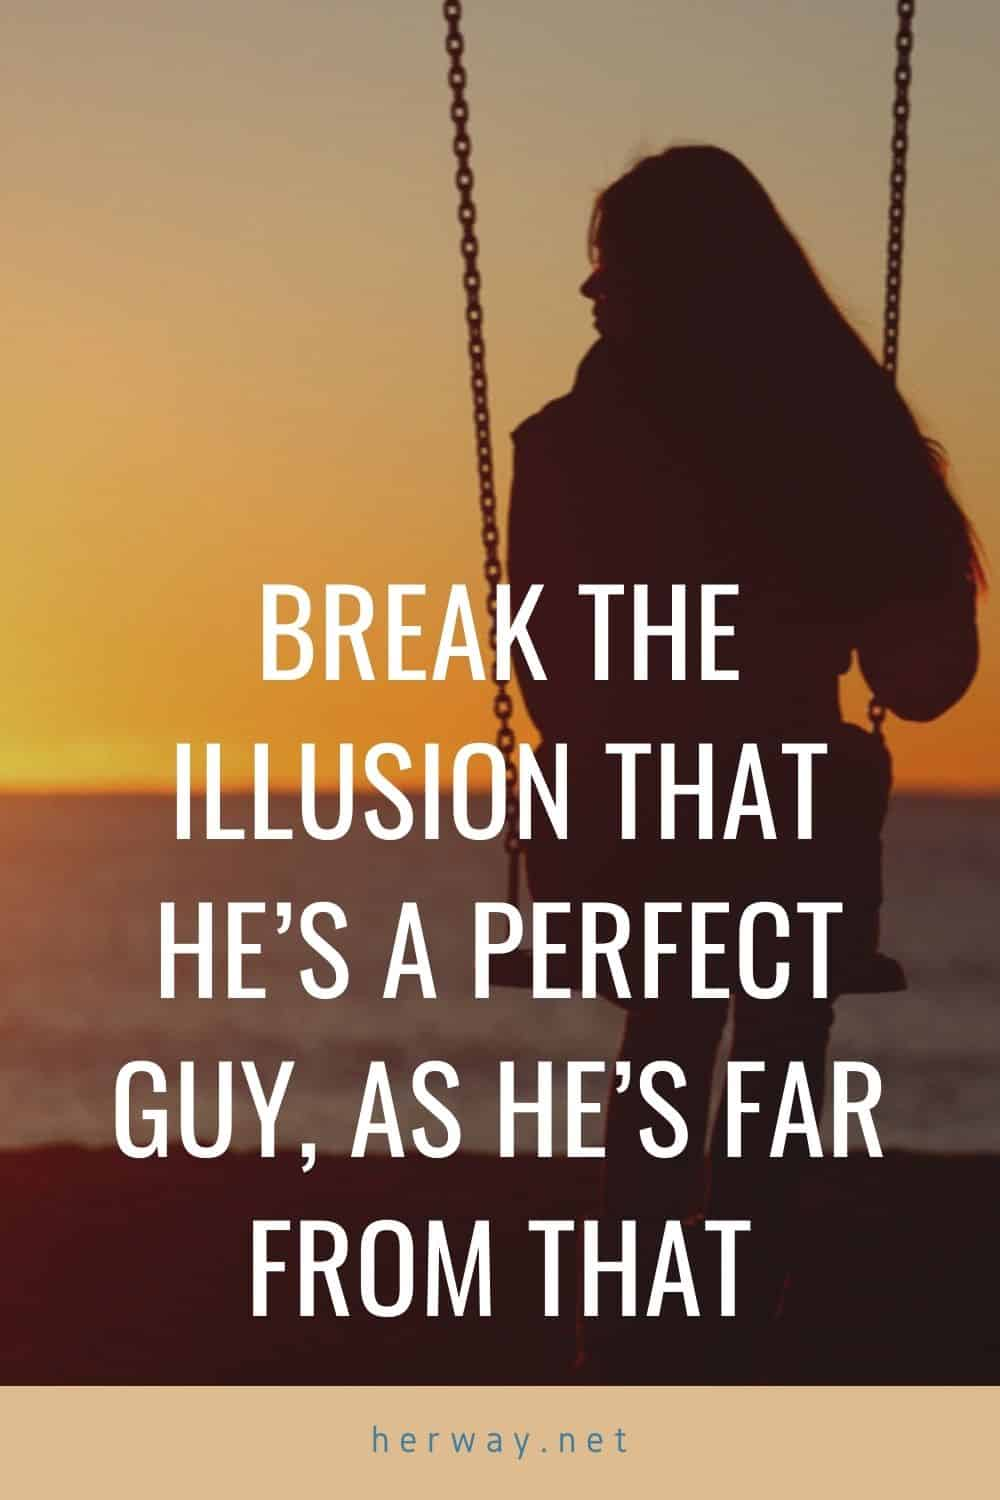 Break The Illusion That He's A Perfect Guy, As He's Far From That